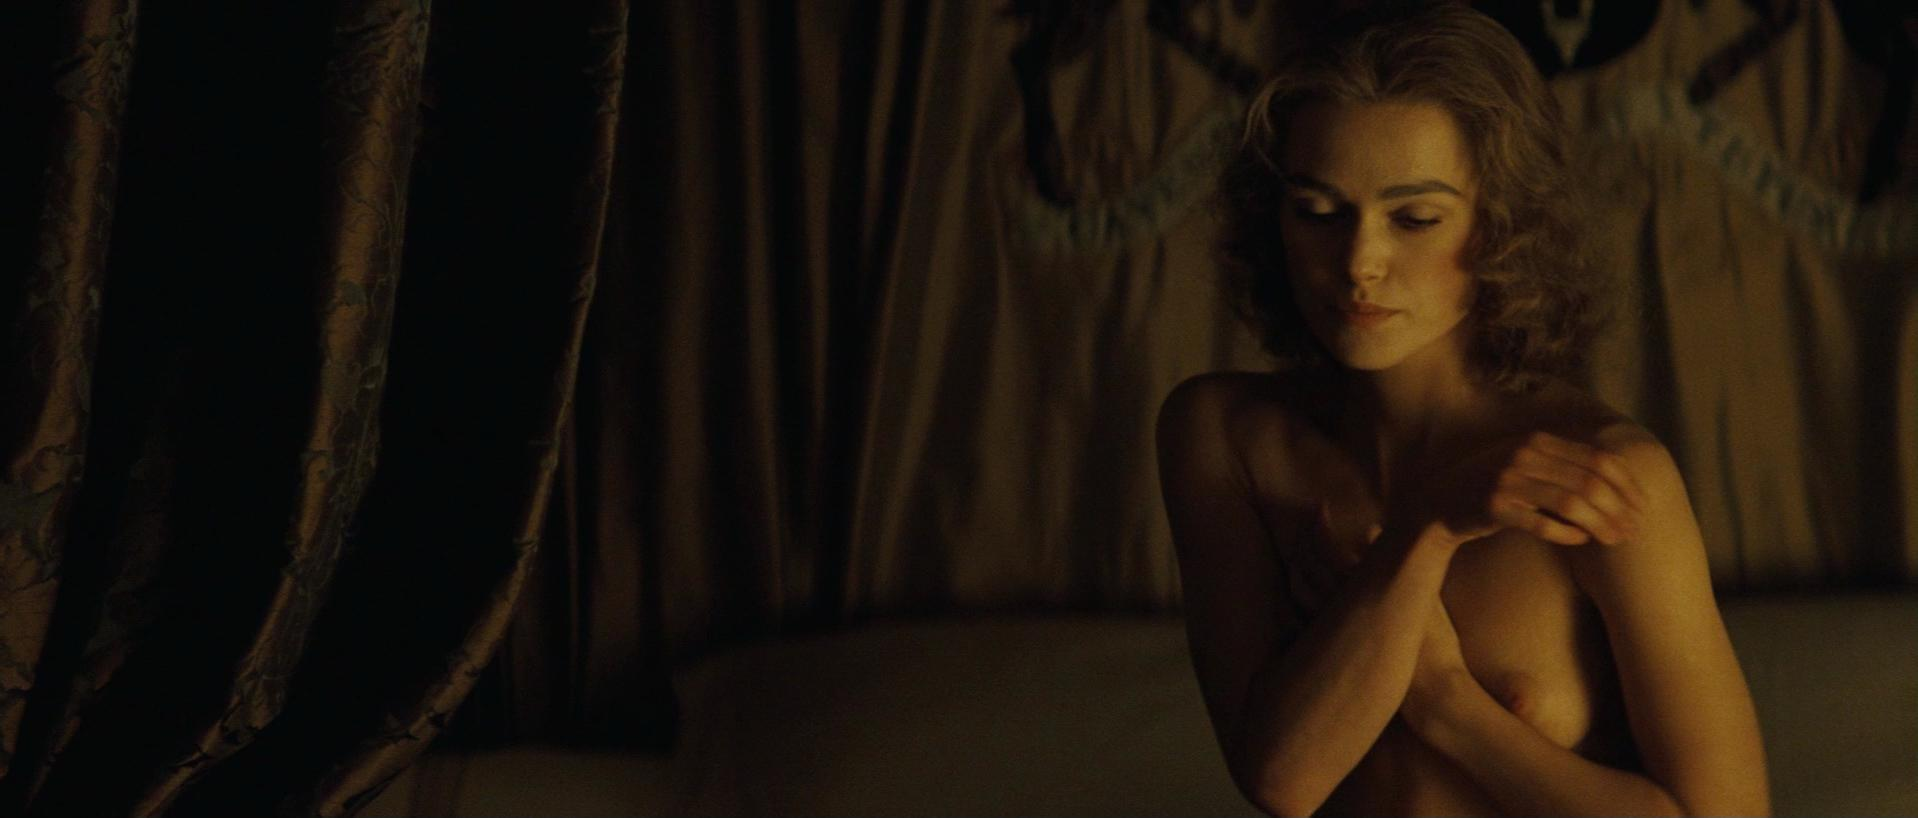 Keira knightley nude in the duchess and with